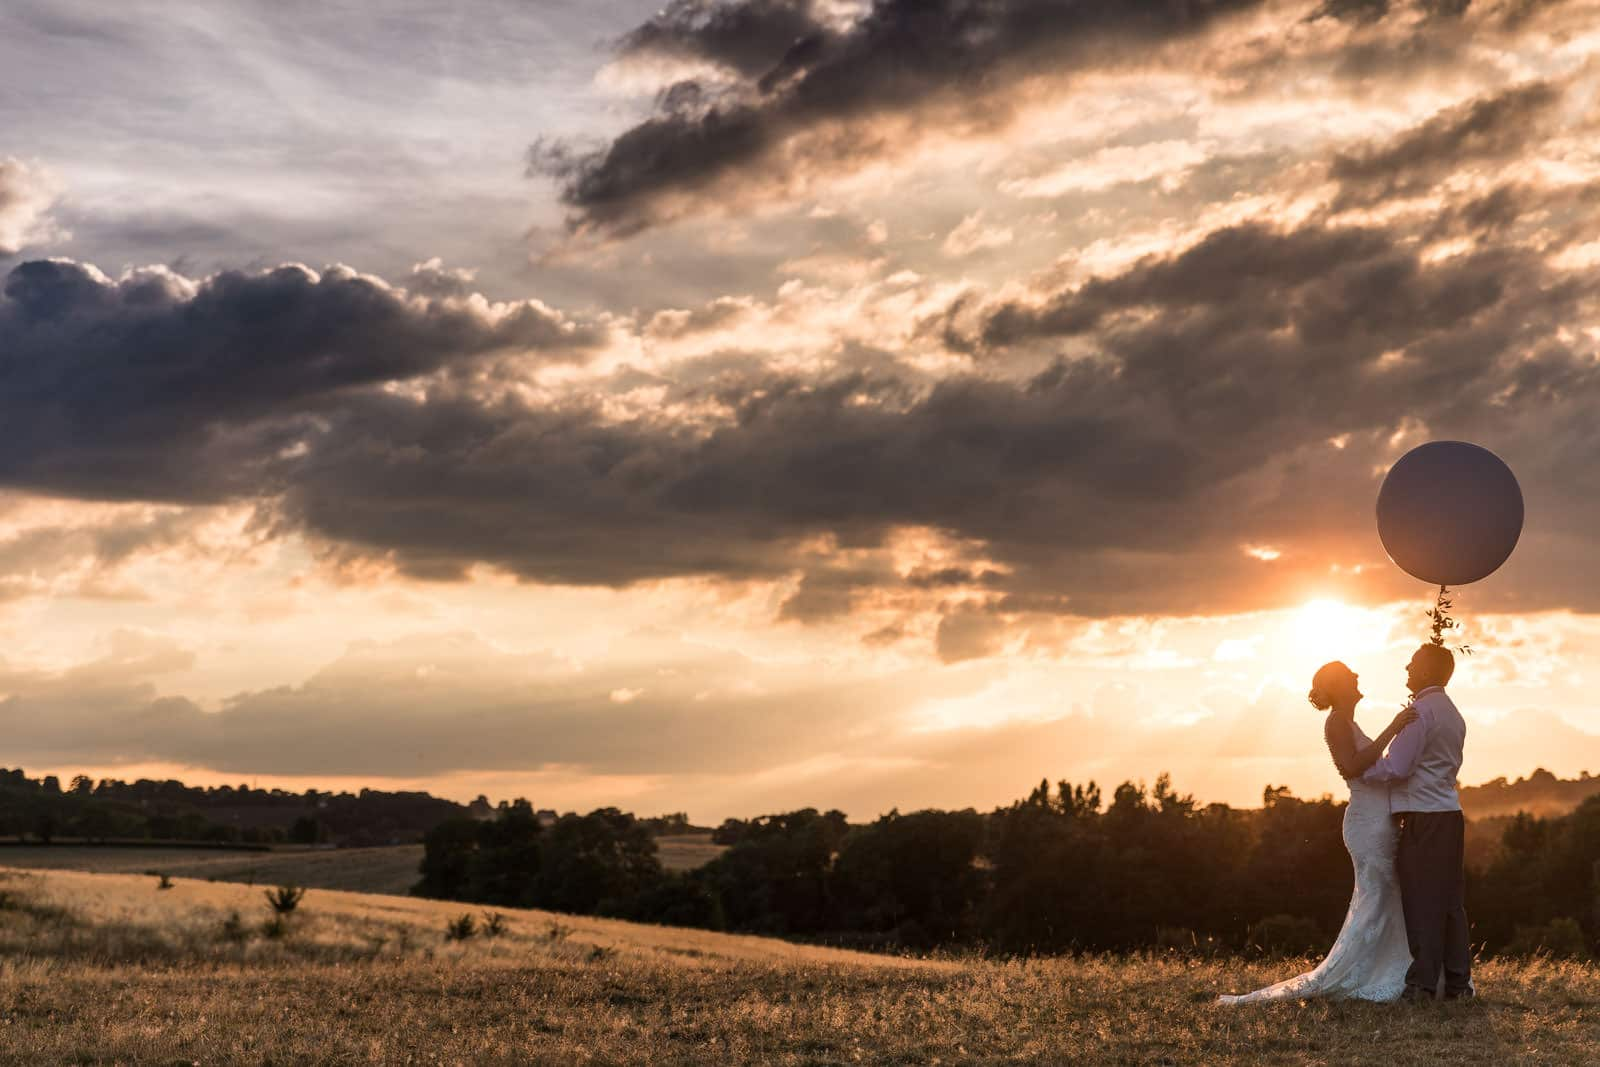 Silhouette of a bride and groom holding a balloon on their wedding day. Photo taken at Dodford Manor